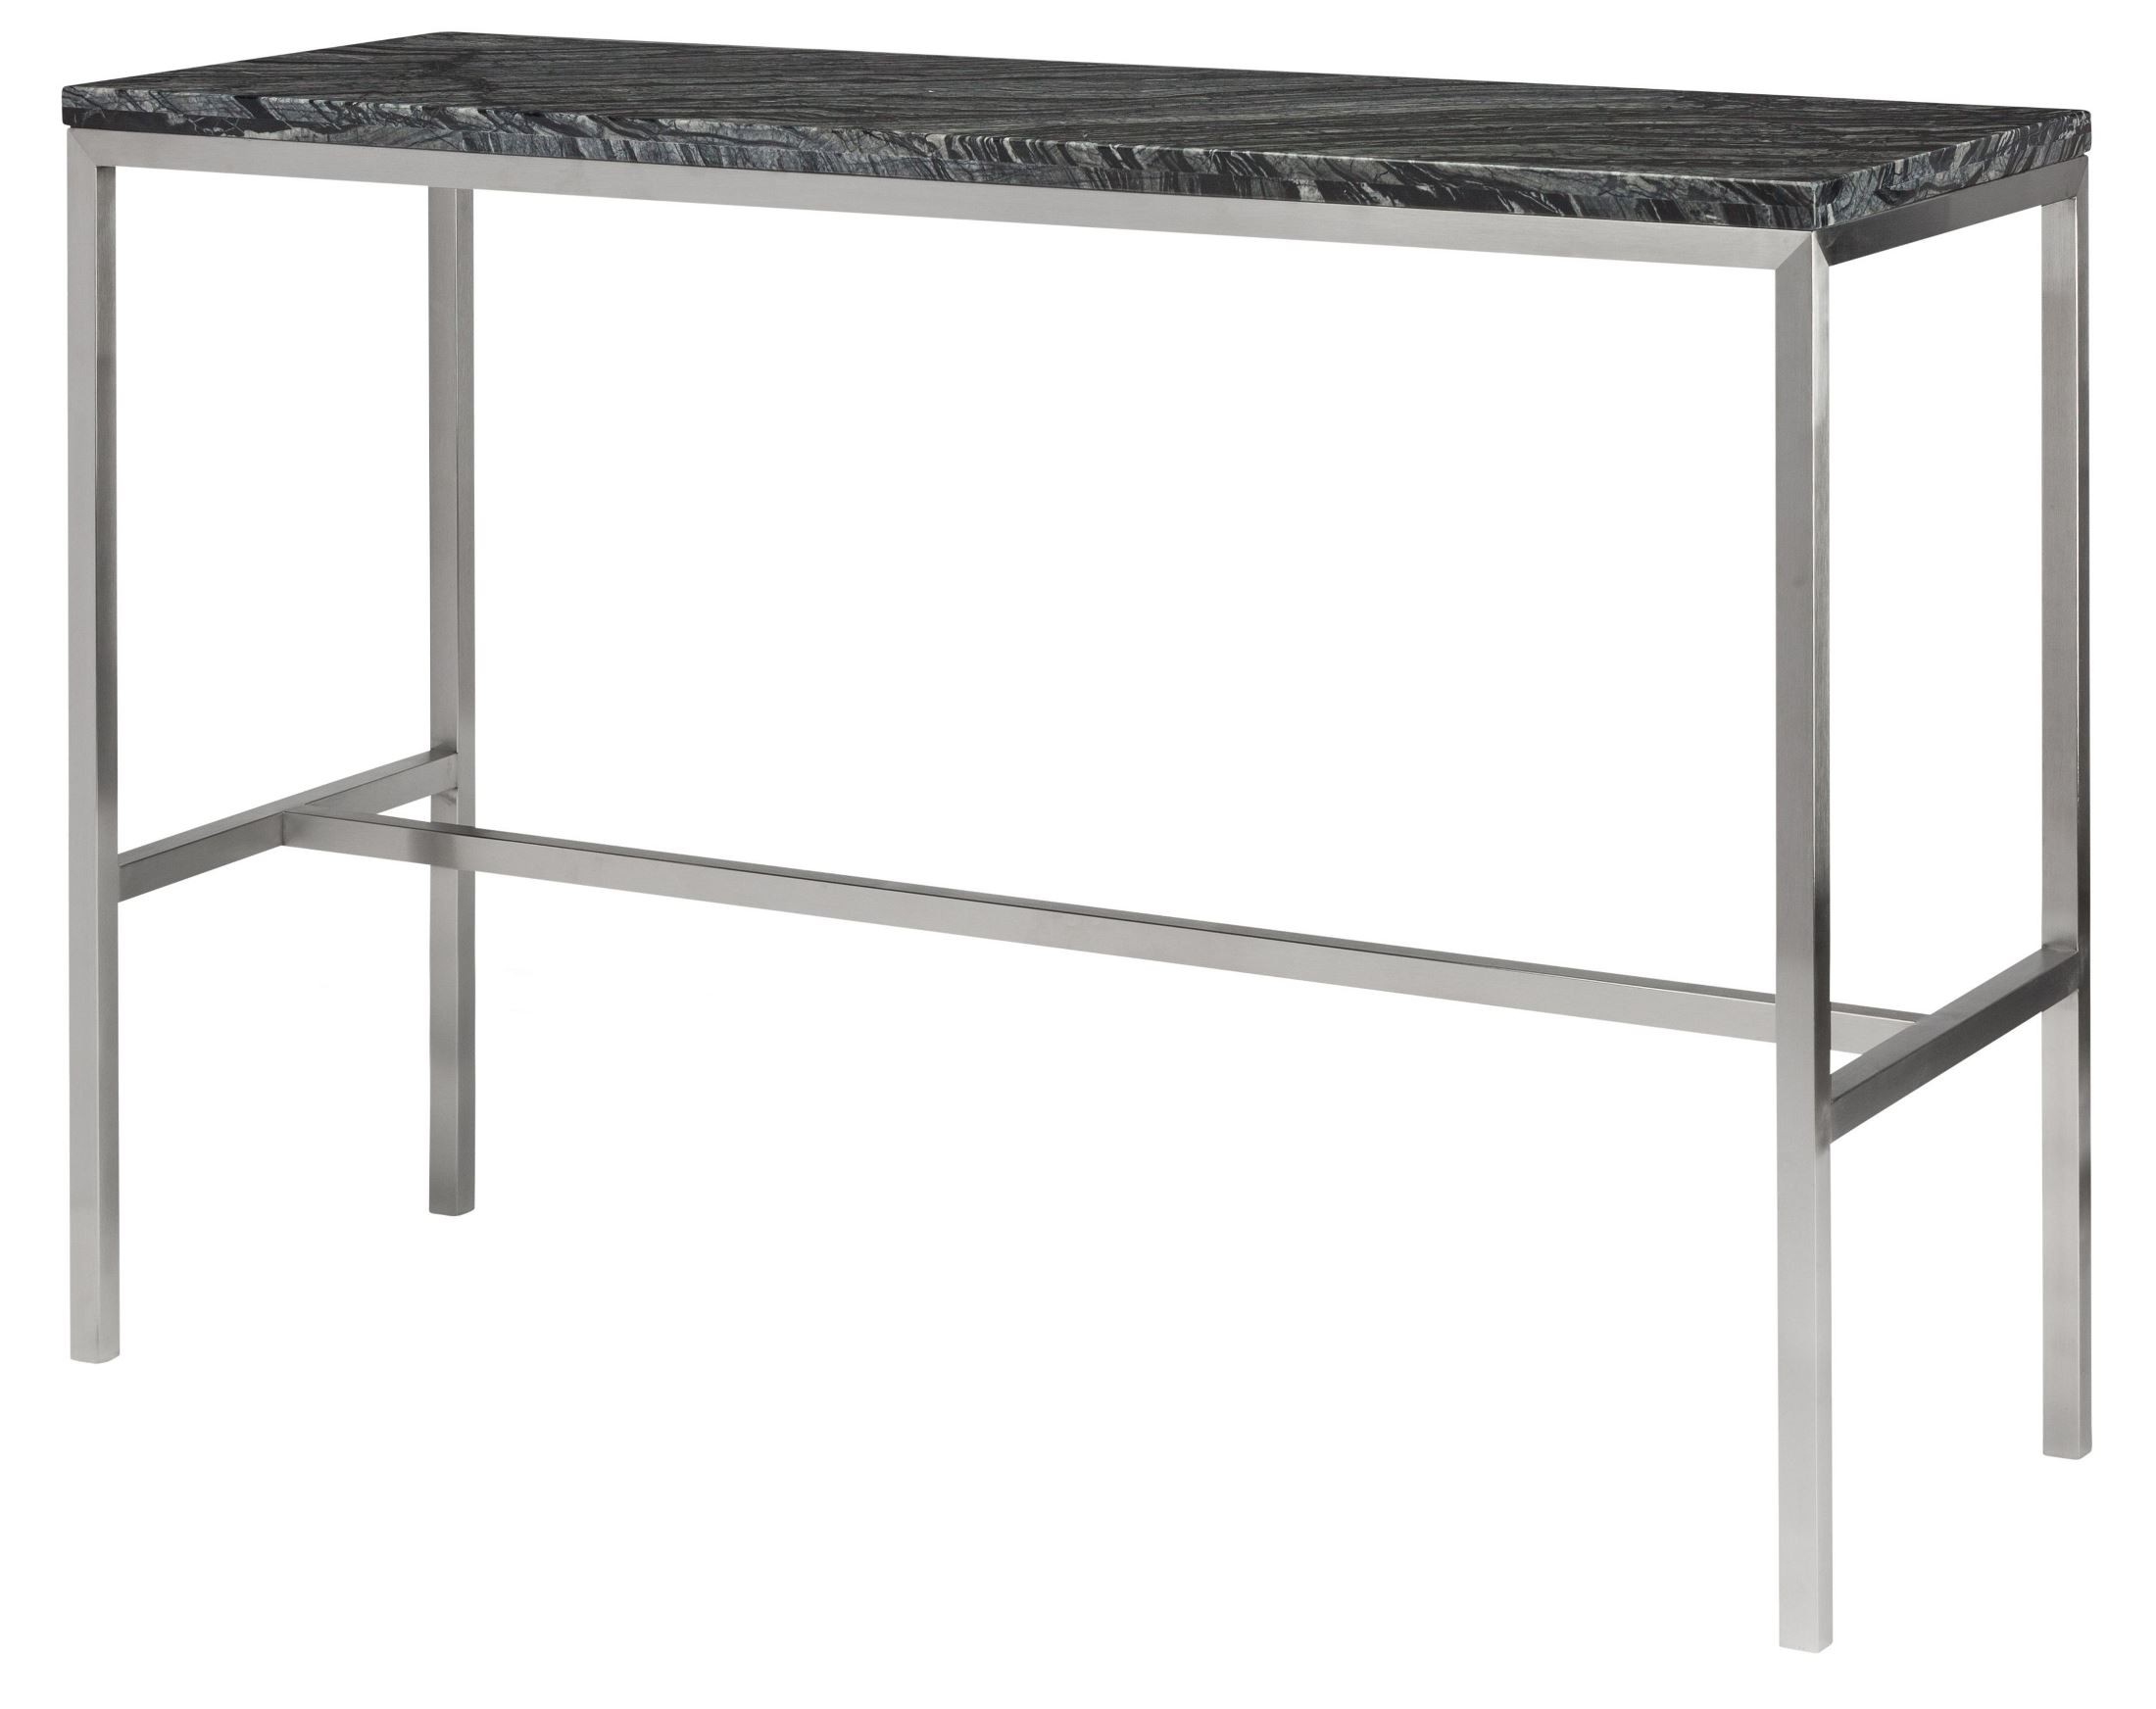 Verona 36 high black stone bar table from nuevo coleman for Table bar 6 personnes